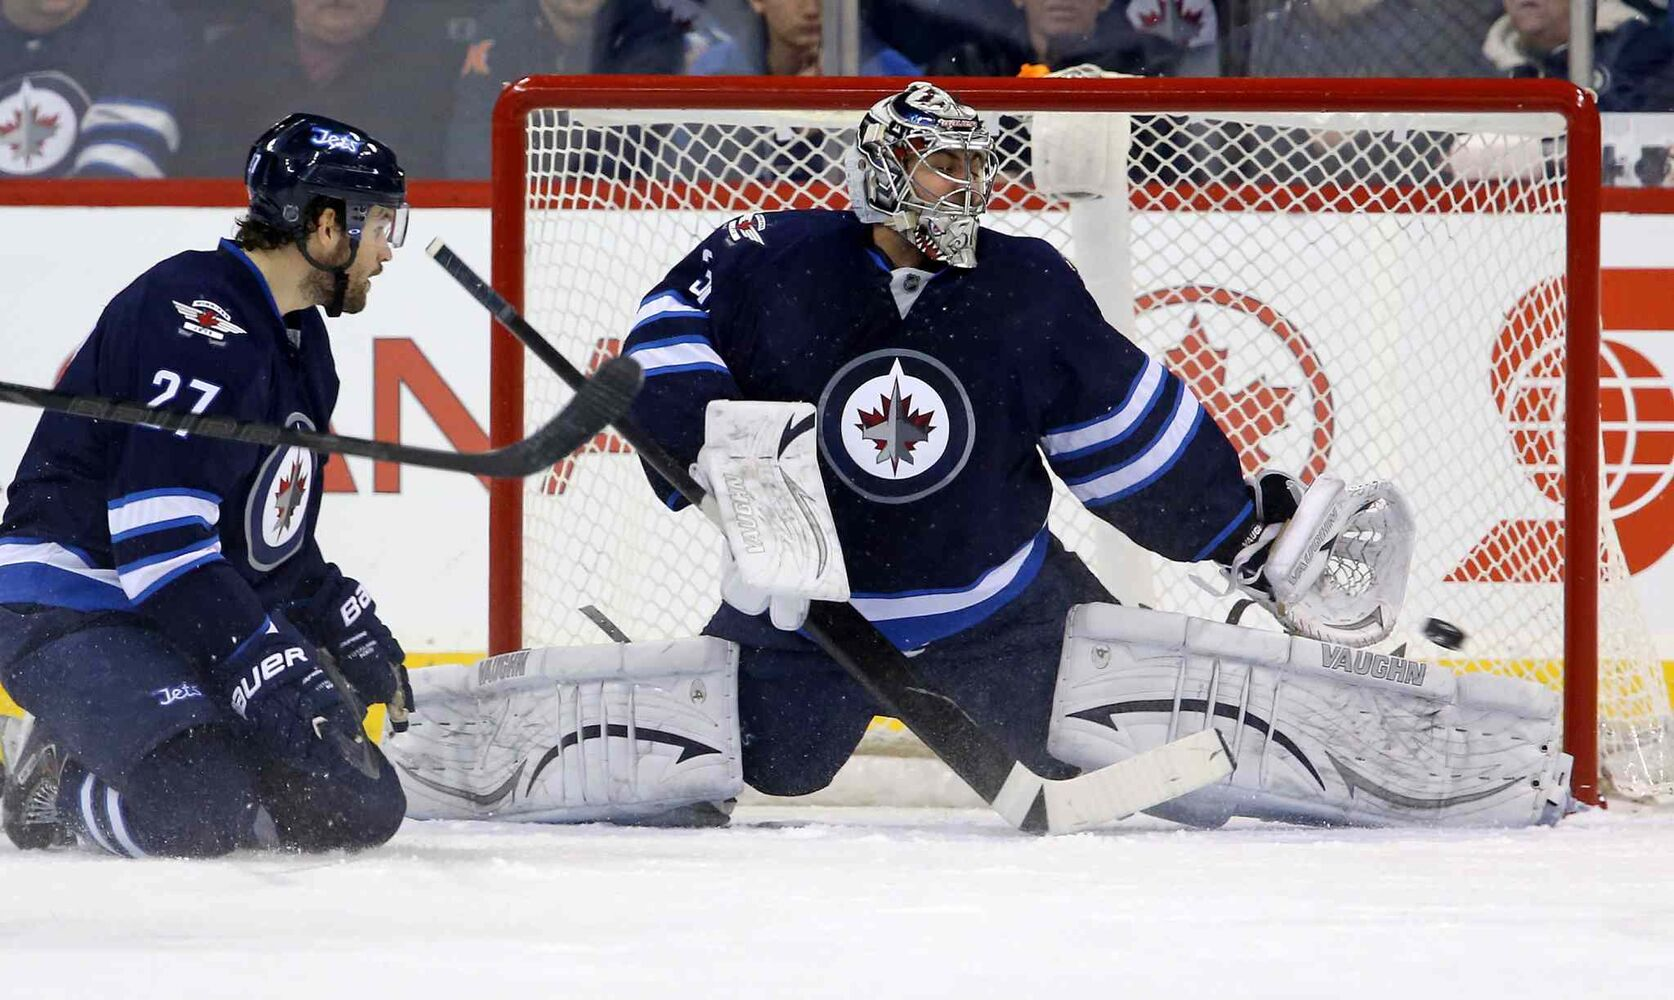 Tampa Bay Lightning's Ondrej Palat (18), not shown, scores on Winnipeg Jets goaltender Ondrej Pavelec (31) with Eric Tangradi (27) in the crease during second period.